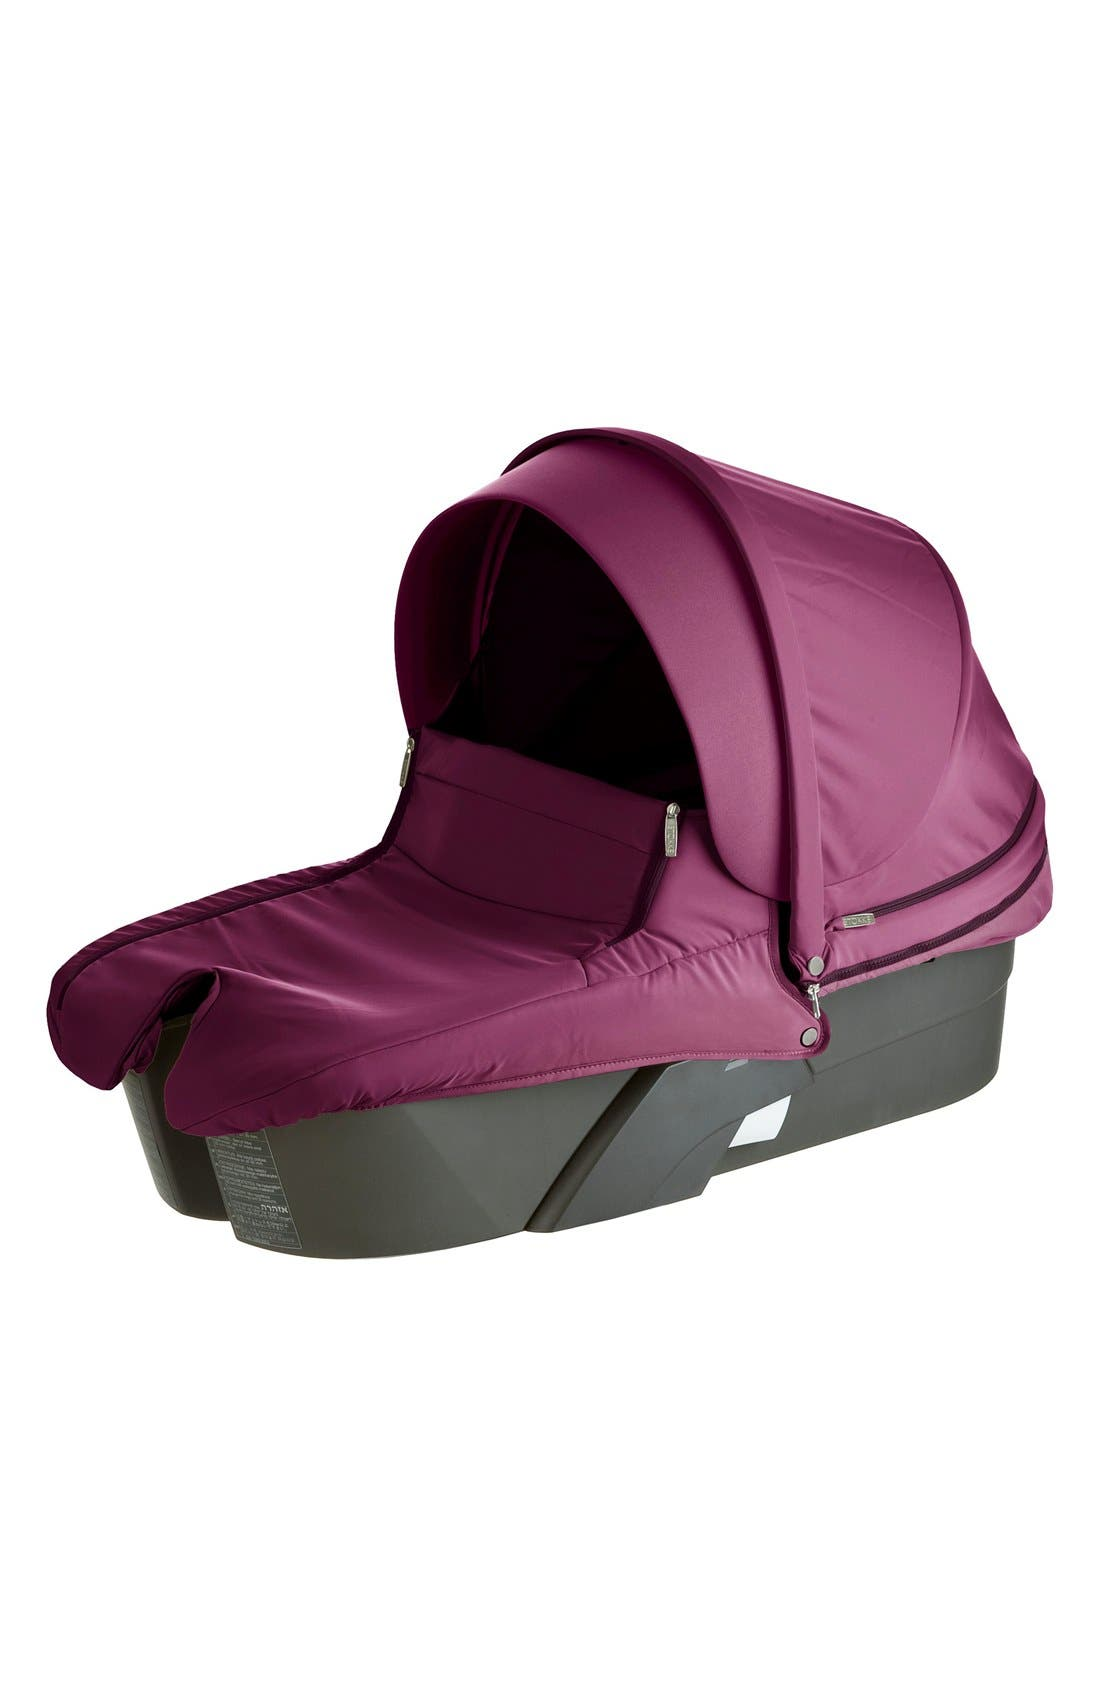 'Xplory<sup>®</sup>' Stroller Carry Cot,                             Main thumbnail 1, color,                             500